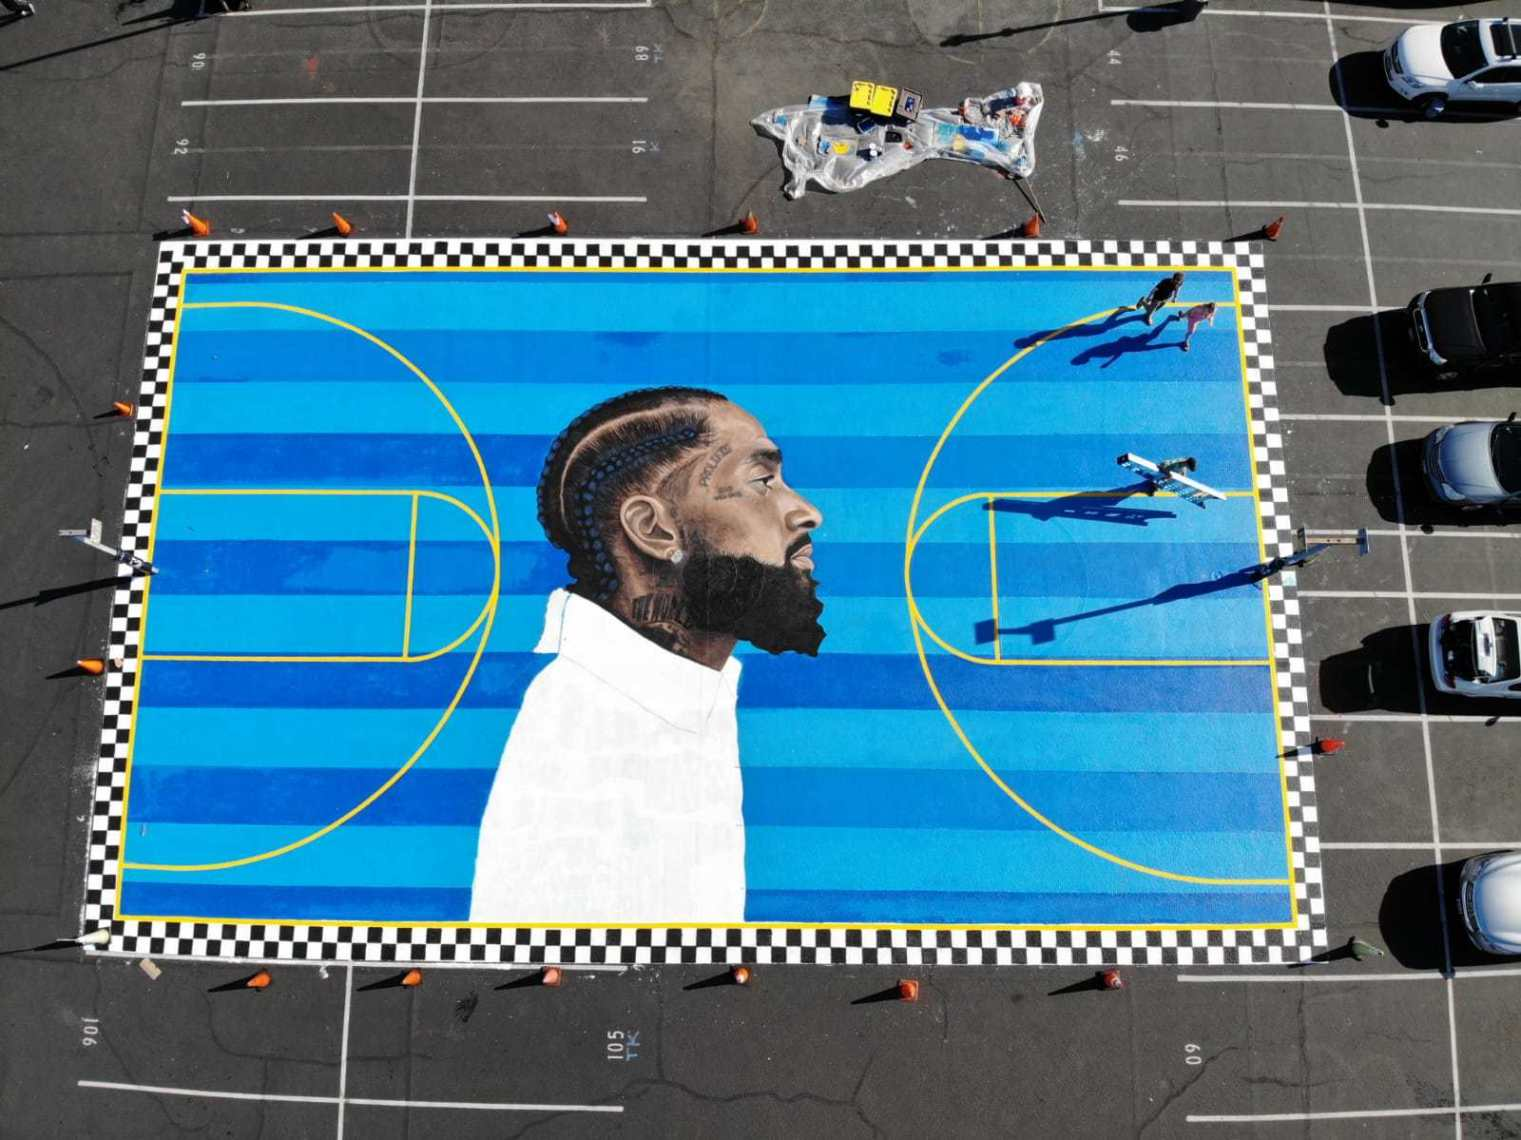 nipsey-hussle-the-highest-human-act-is-to-inspire-see-the-emotional-videos-of-nips-basketball-court-mural-unveiled-at-crete-academy